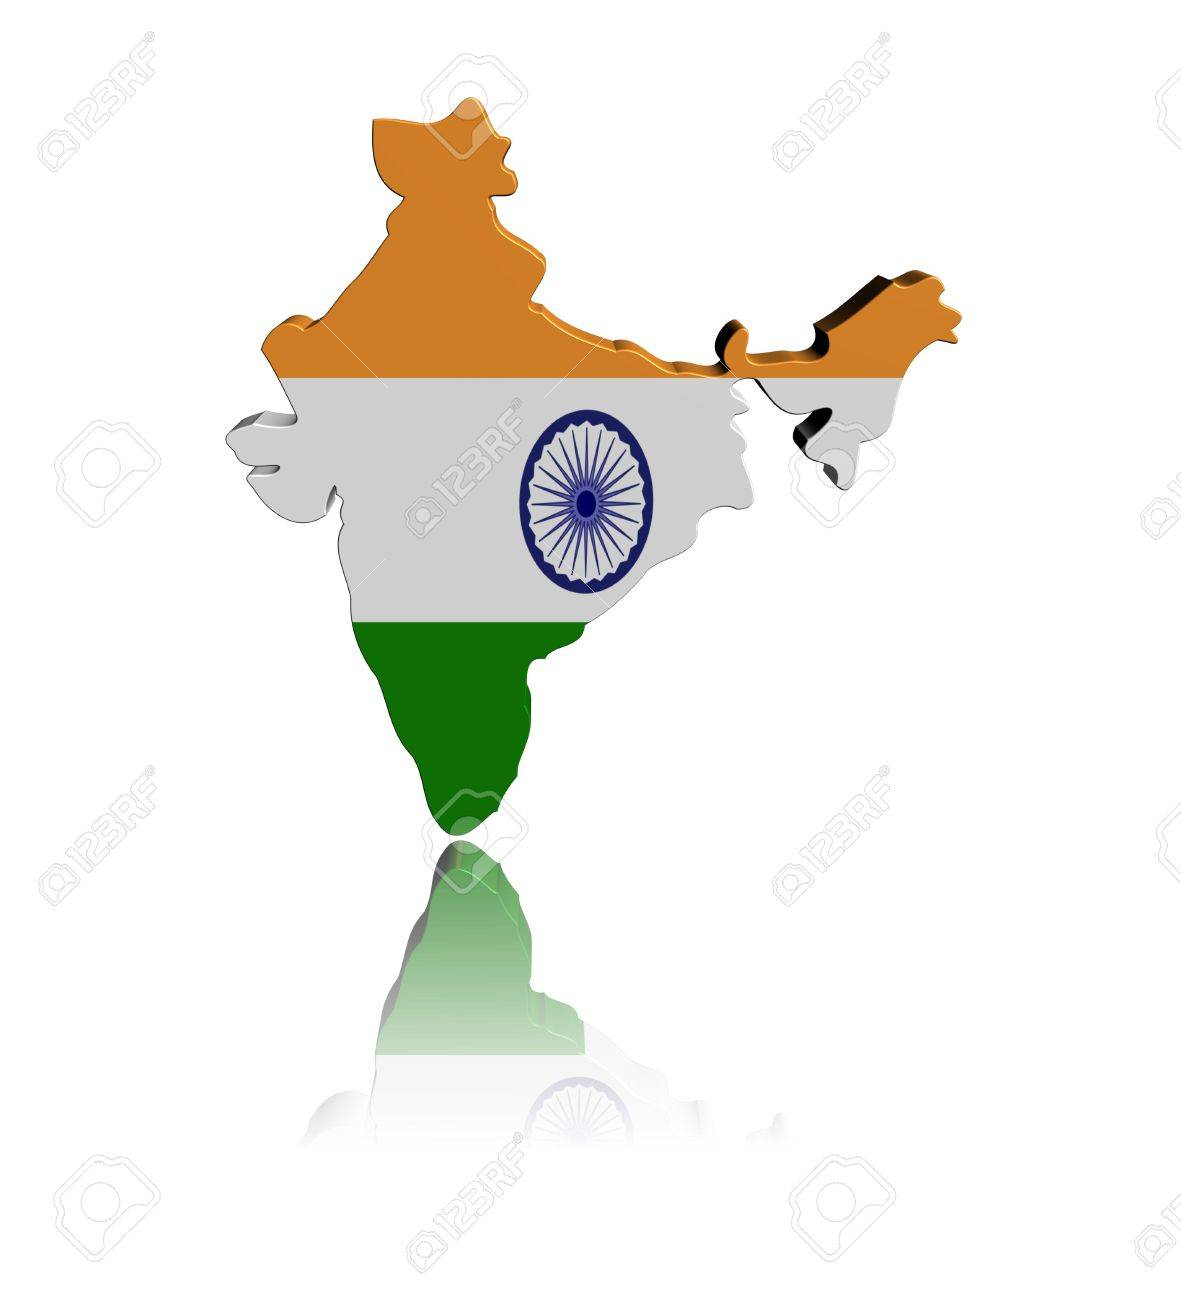 India Map Flag.India Map Flag 3d Render With Reflection Illustration Stock Photo